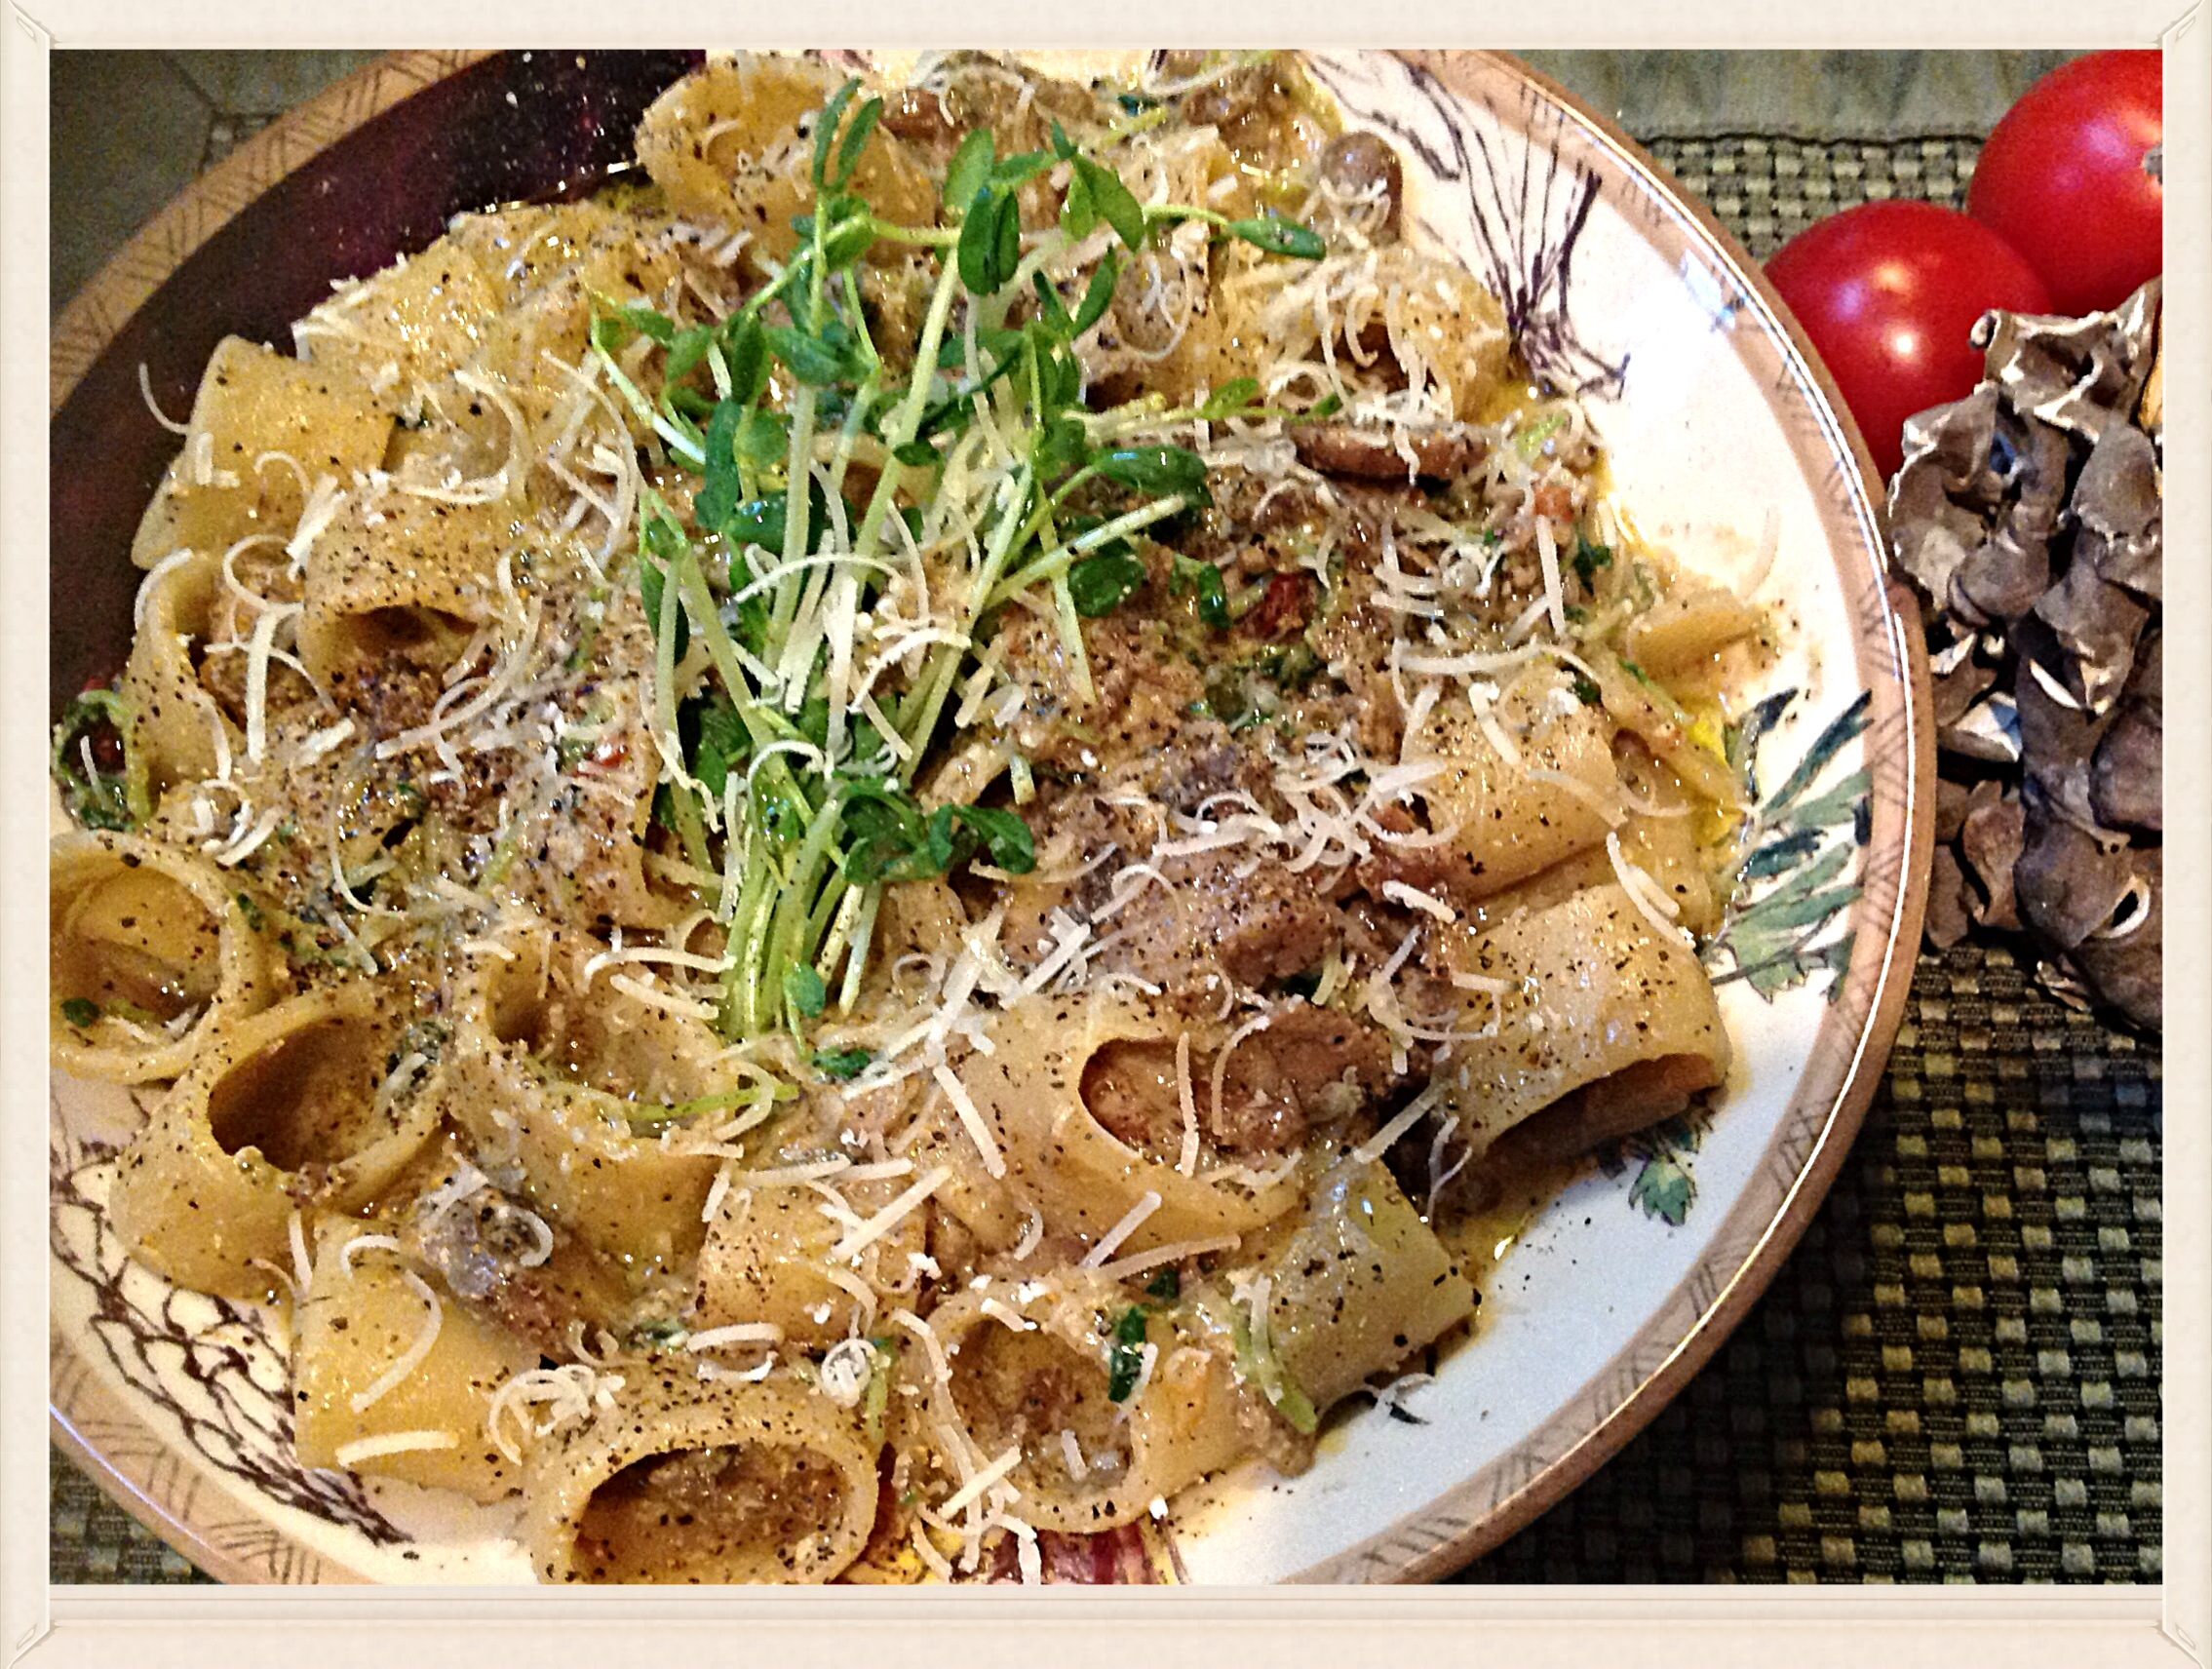 Pasta with Mushrooms and Pea Shoots - Creative